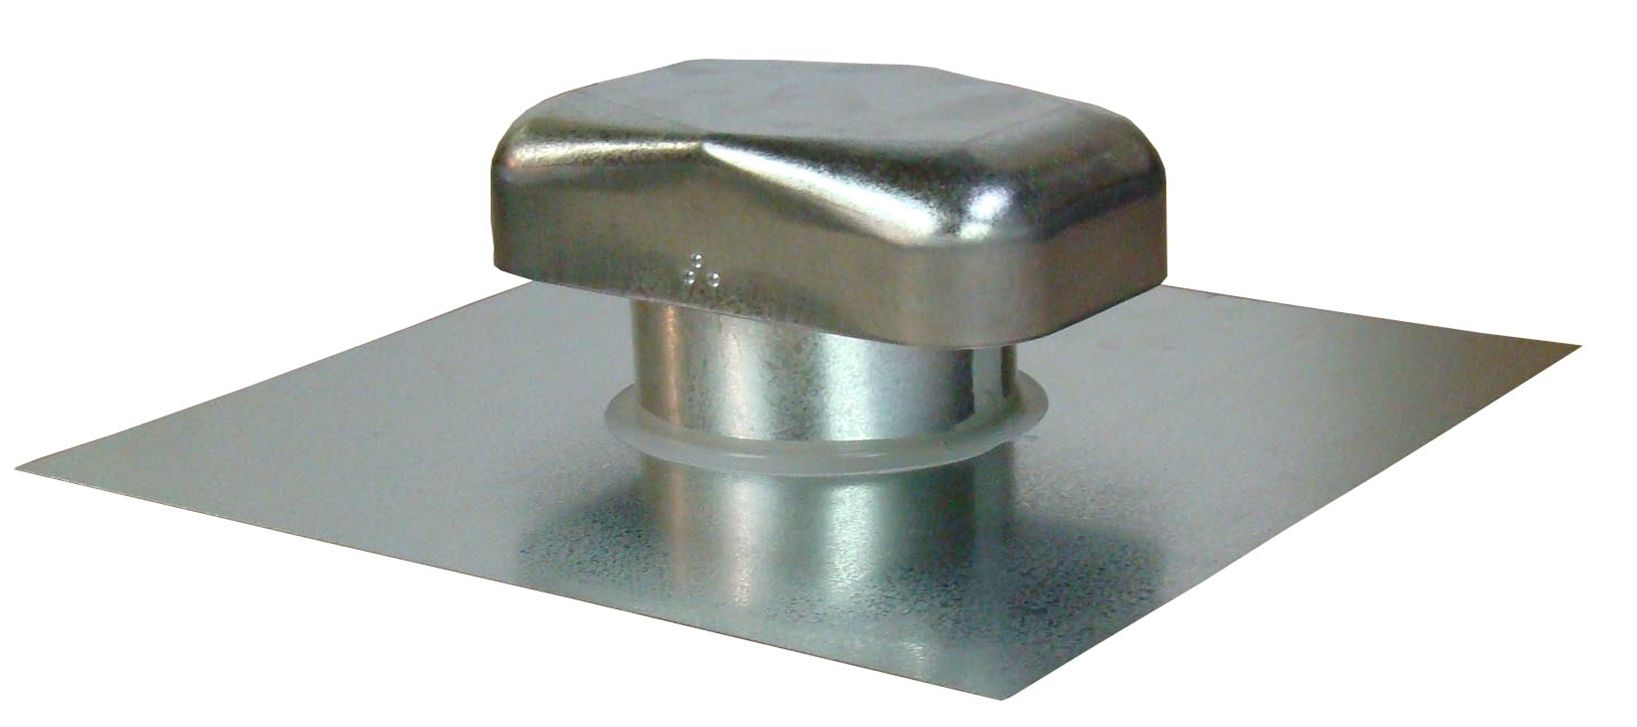 Bathroom Exhaust Fan Roof Vent Cap Bathroom Exclusiv Pinterest - Bathroom exhaust fan roof vent cap